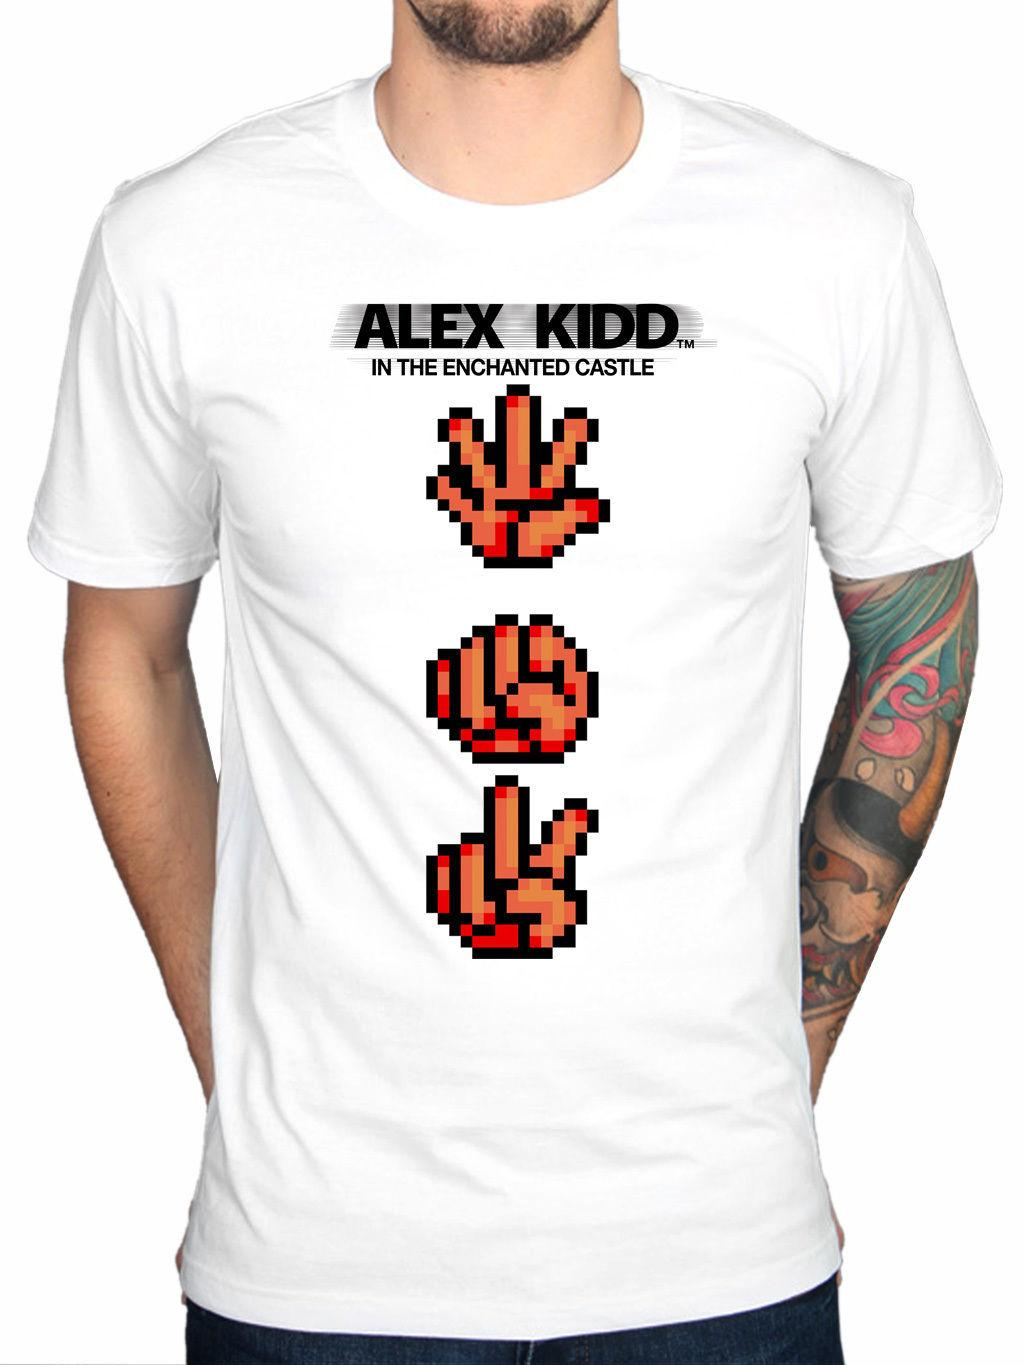 Official Alex Kidd Paper Rock Scissors NEW T-shirt Sega Video Game Console Kids Men Women Unisex Fashion tshirt Free Shipping Funny Cool